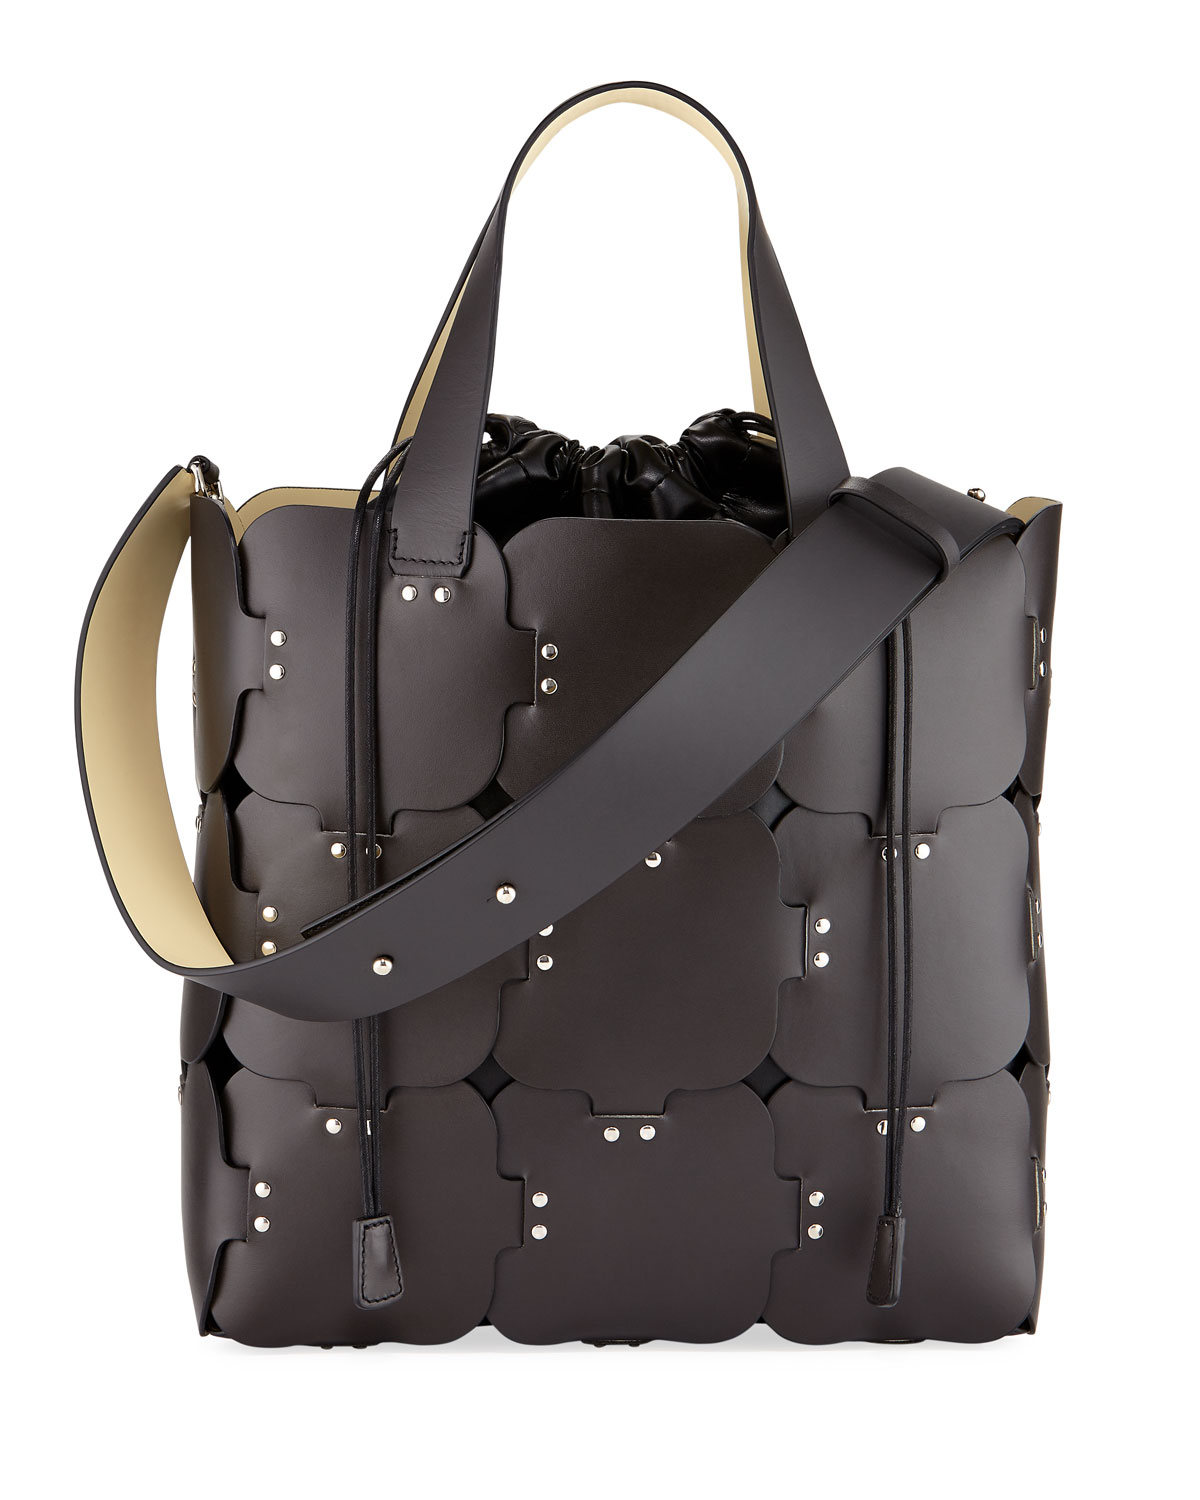 16#01 Cabas Medium Studded Patchwork Tote Bag